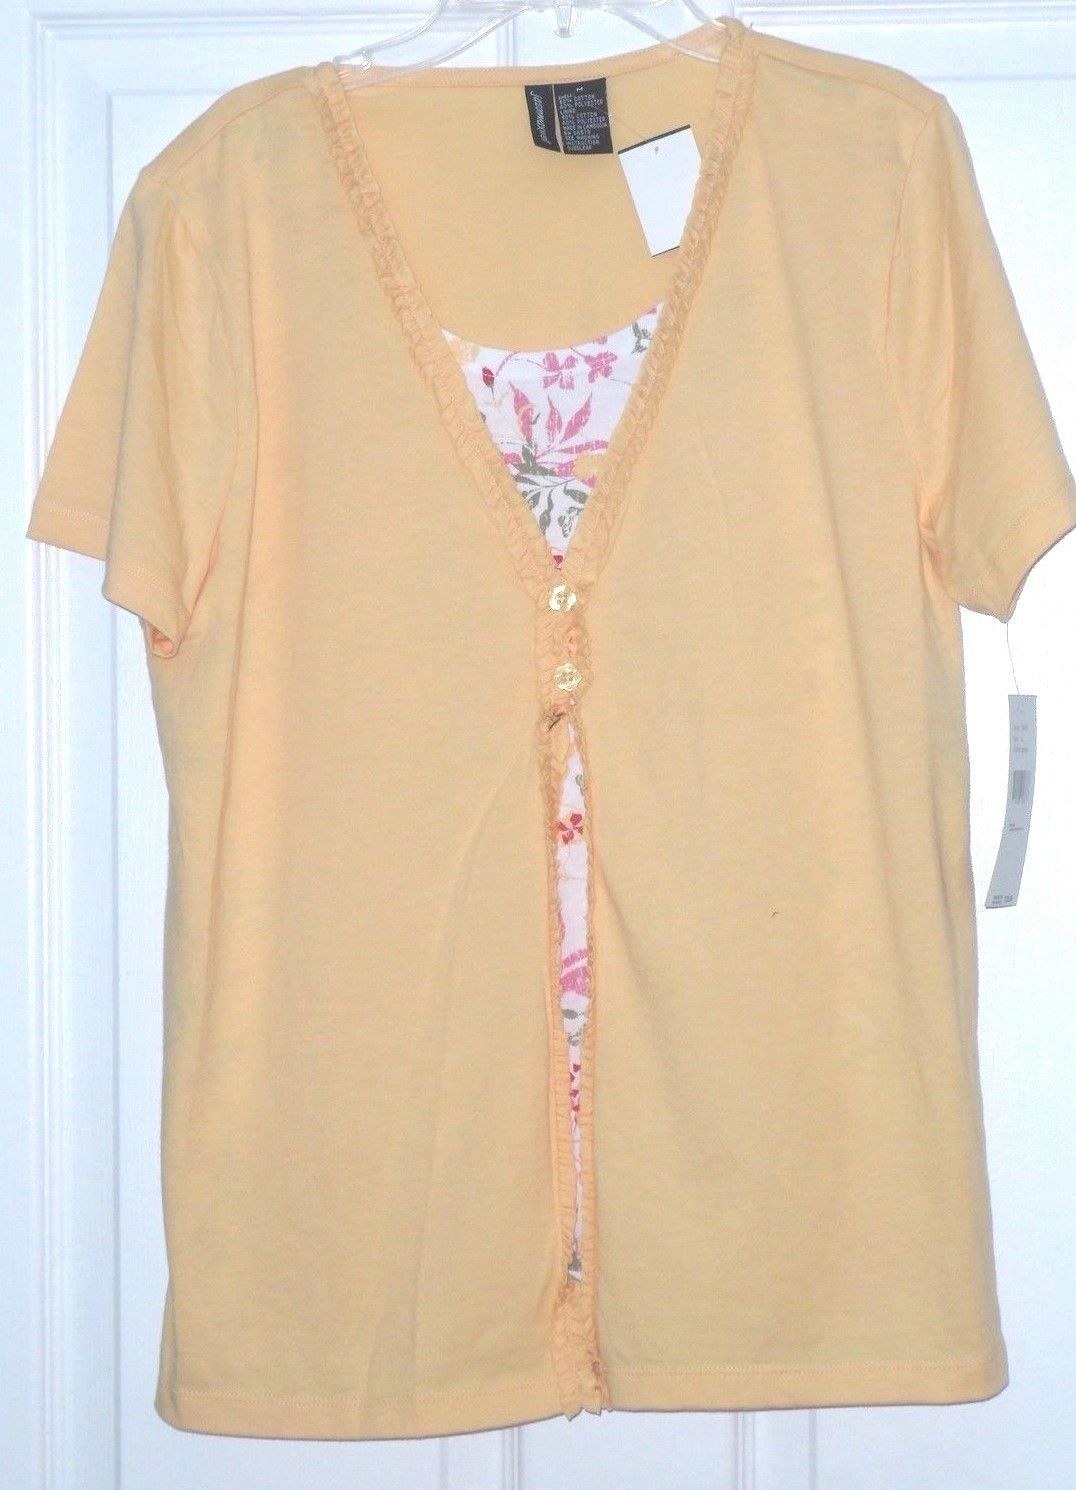 JASON MAXWELL KNIT TOP SHIRT SIZE S - M ROSE RED APRICOT YELLOW MSRP:$28.00 NWT